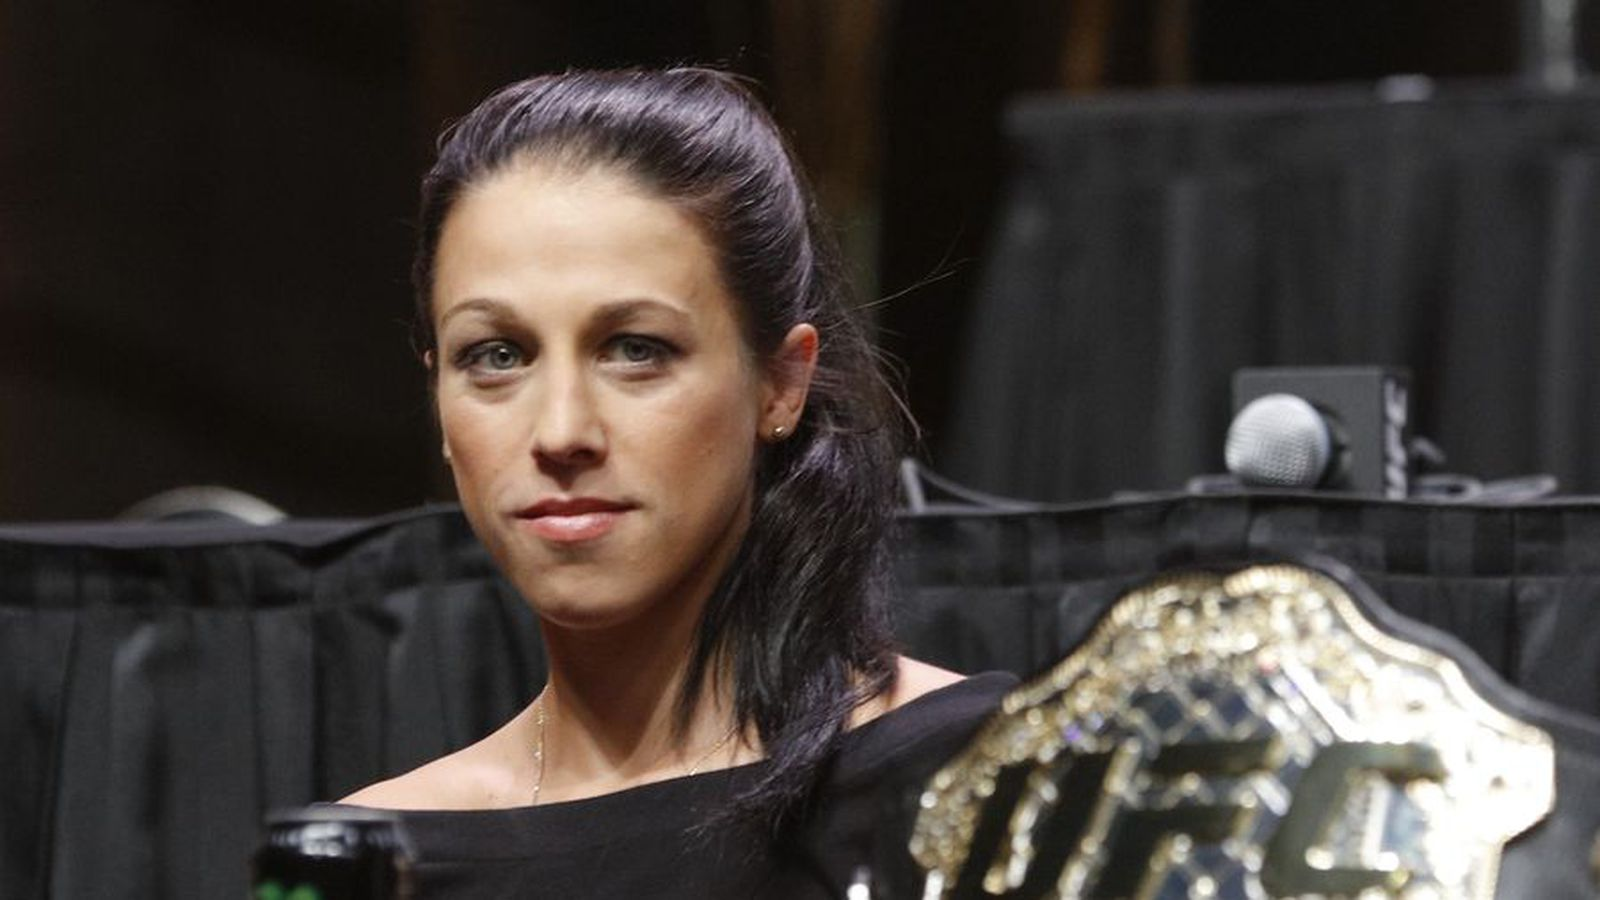 joanna jedrzejczyk eyeing ronda rousey u2019s title defense record as ufc 211 approaches